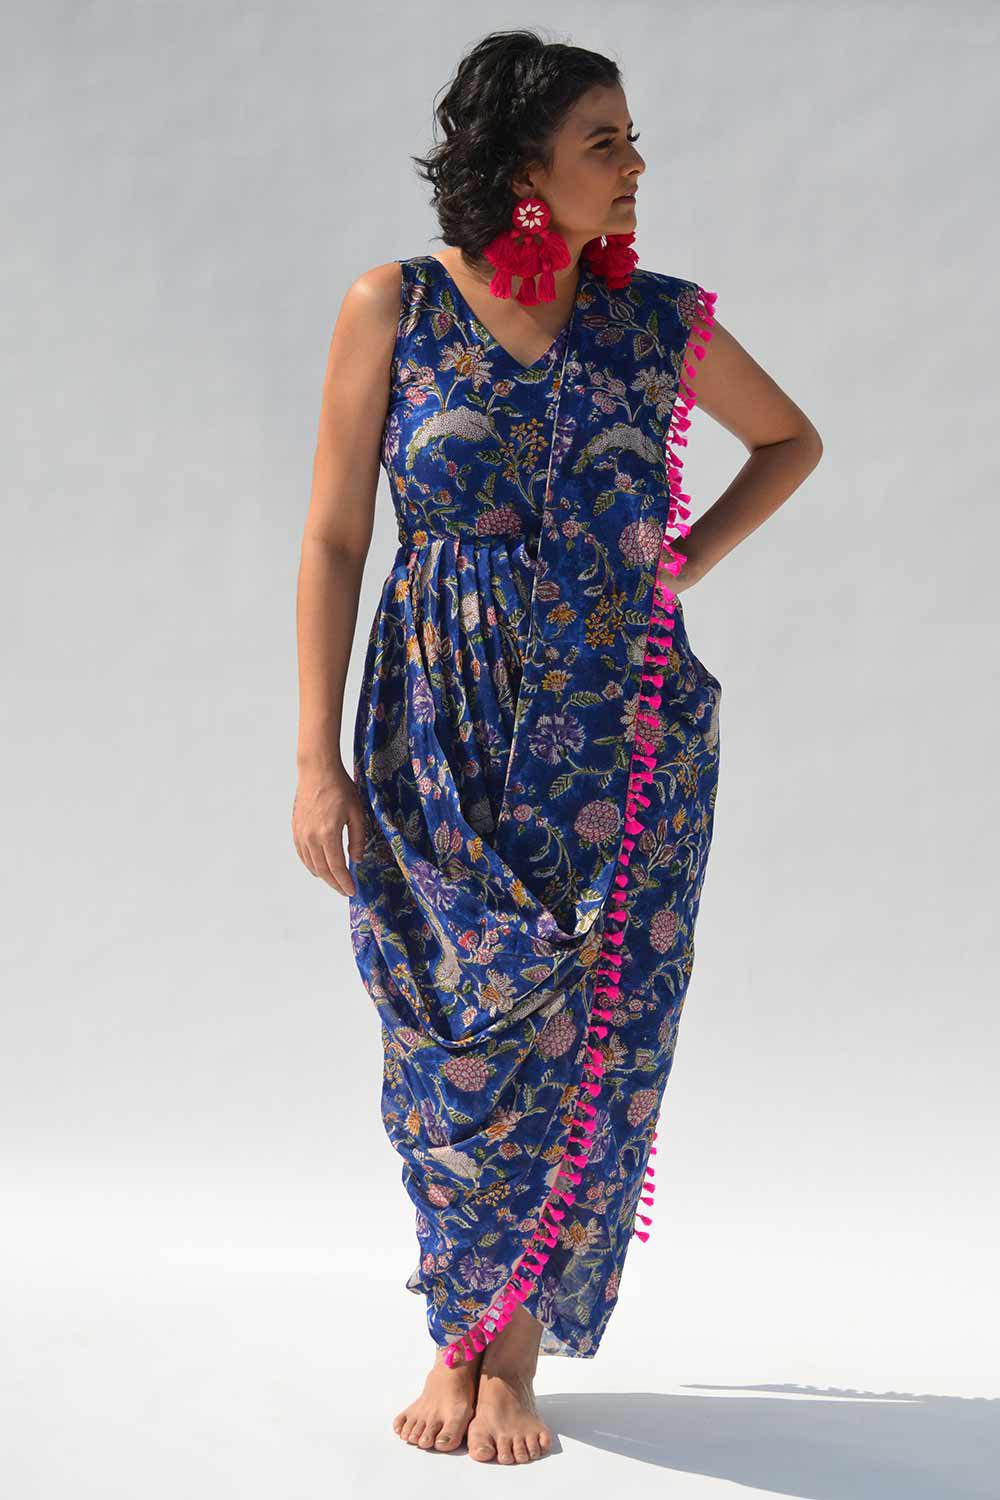 Neel Blue Floral Saree Dress with Bright Pink Tassels - Riviera Closet